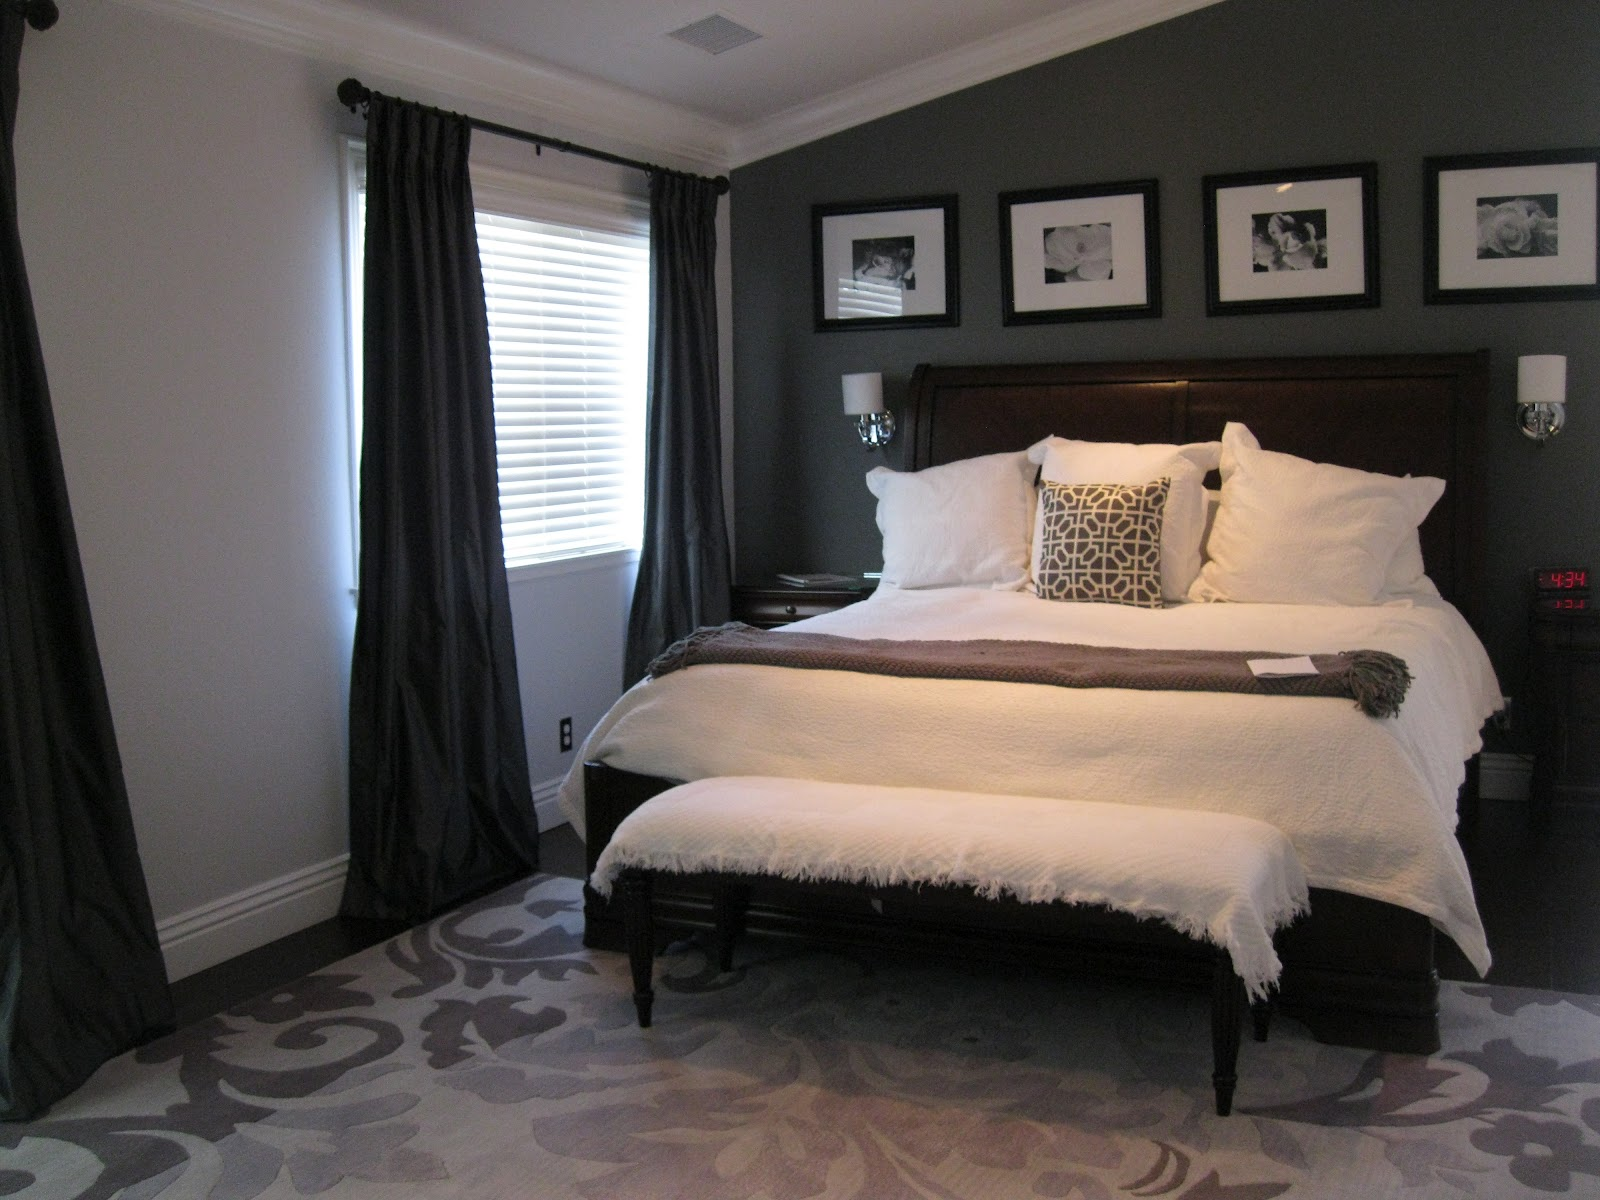 C b i d home decor and design charcoal gray master suite Decorating ideas for bedroom with gray walls